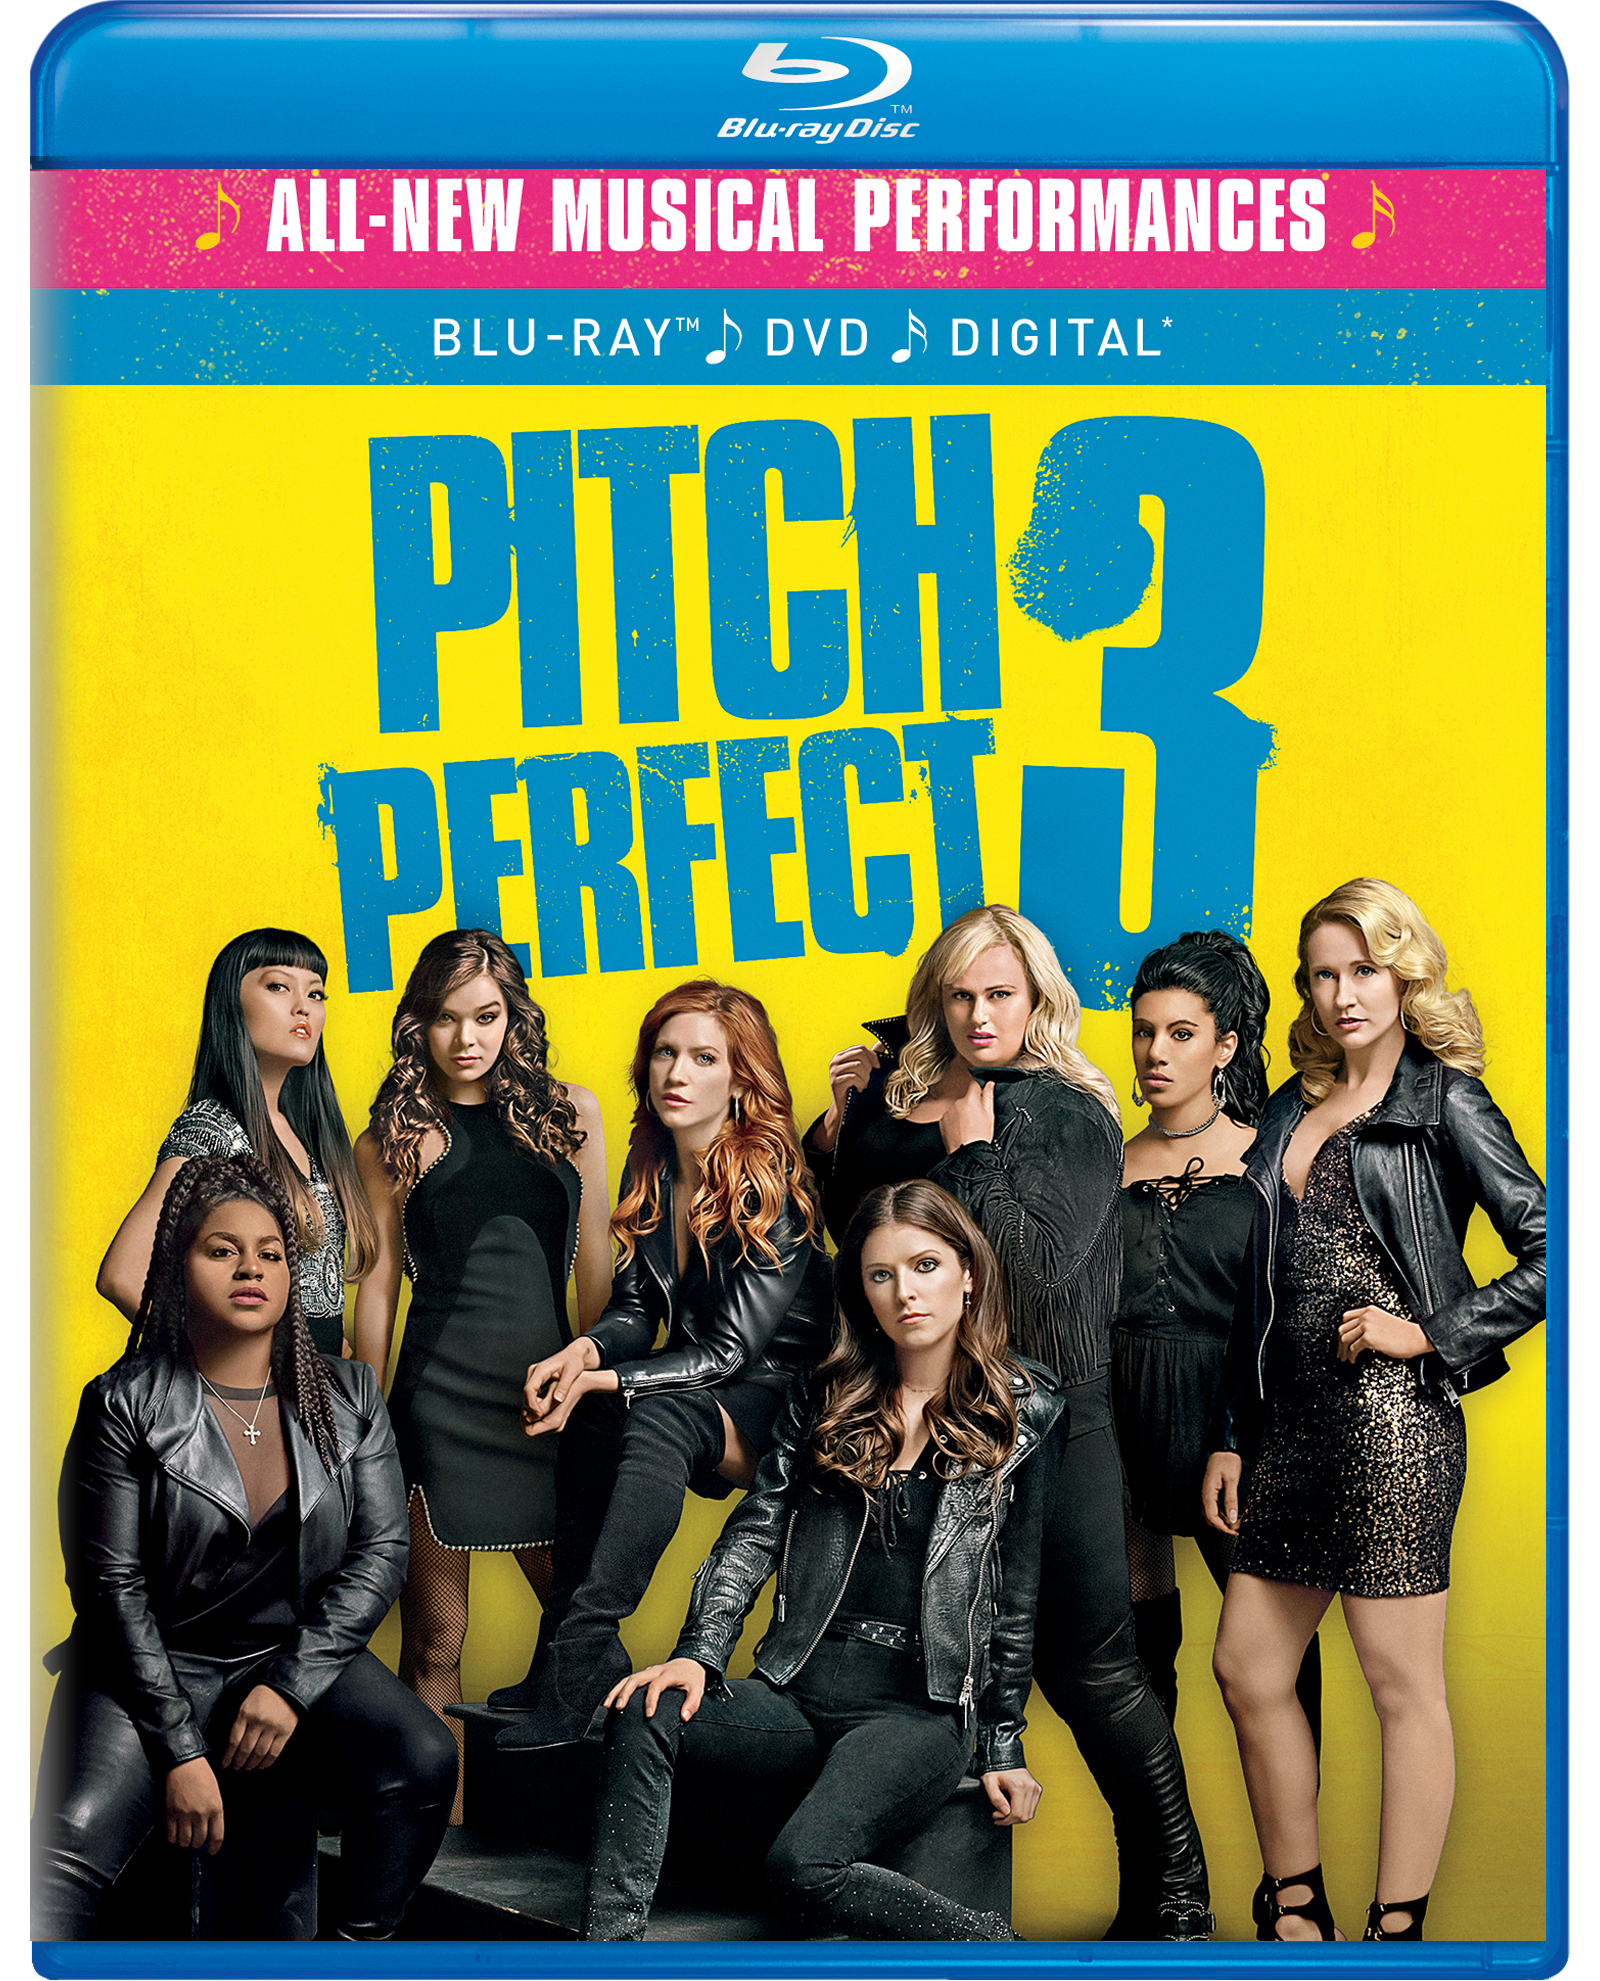 Pitch Perfect 3 (Blu-ray / DVD / Digital) PartNumber: A017969311 KsnValue: 2703840 MfgPartNumber: 61181257